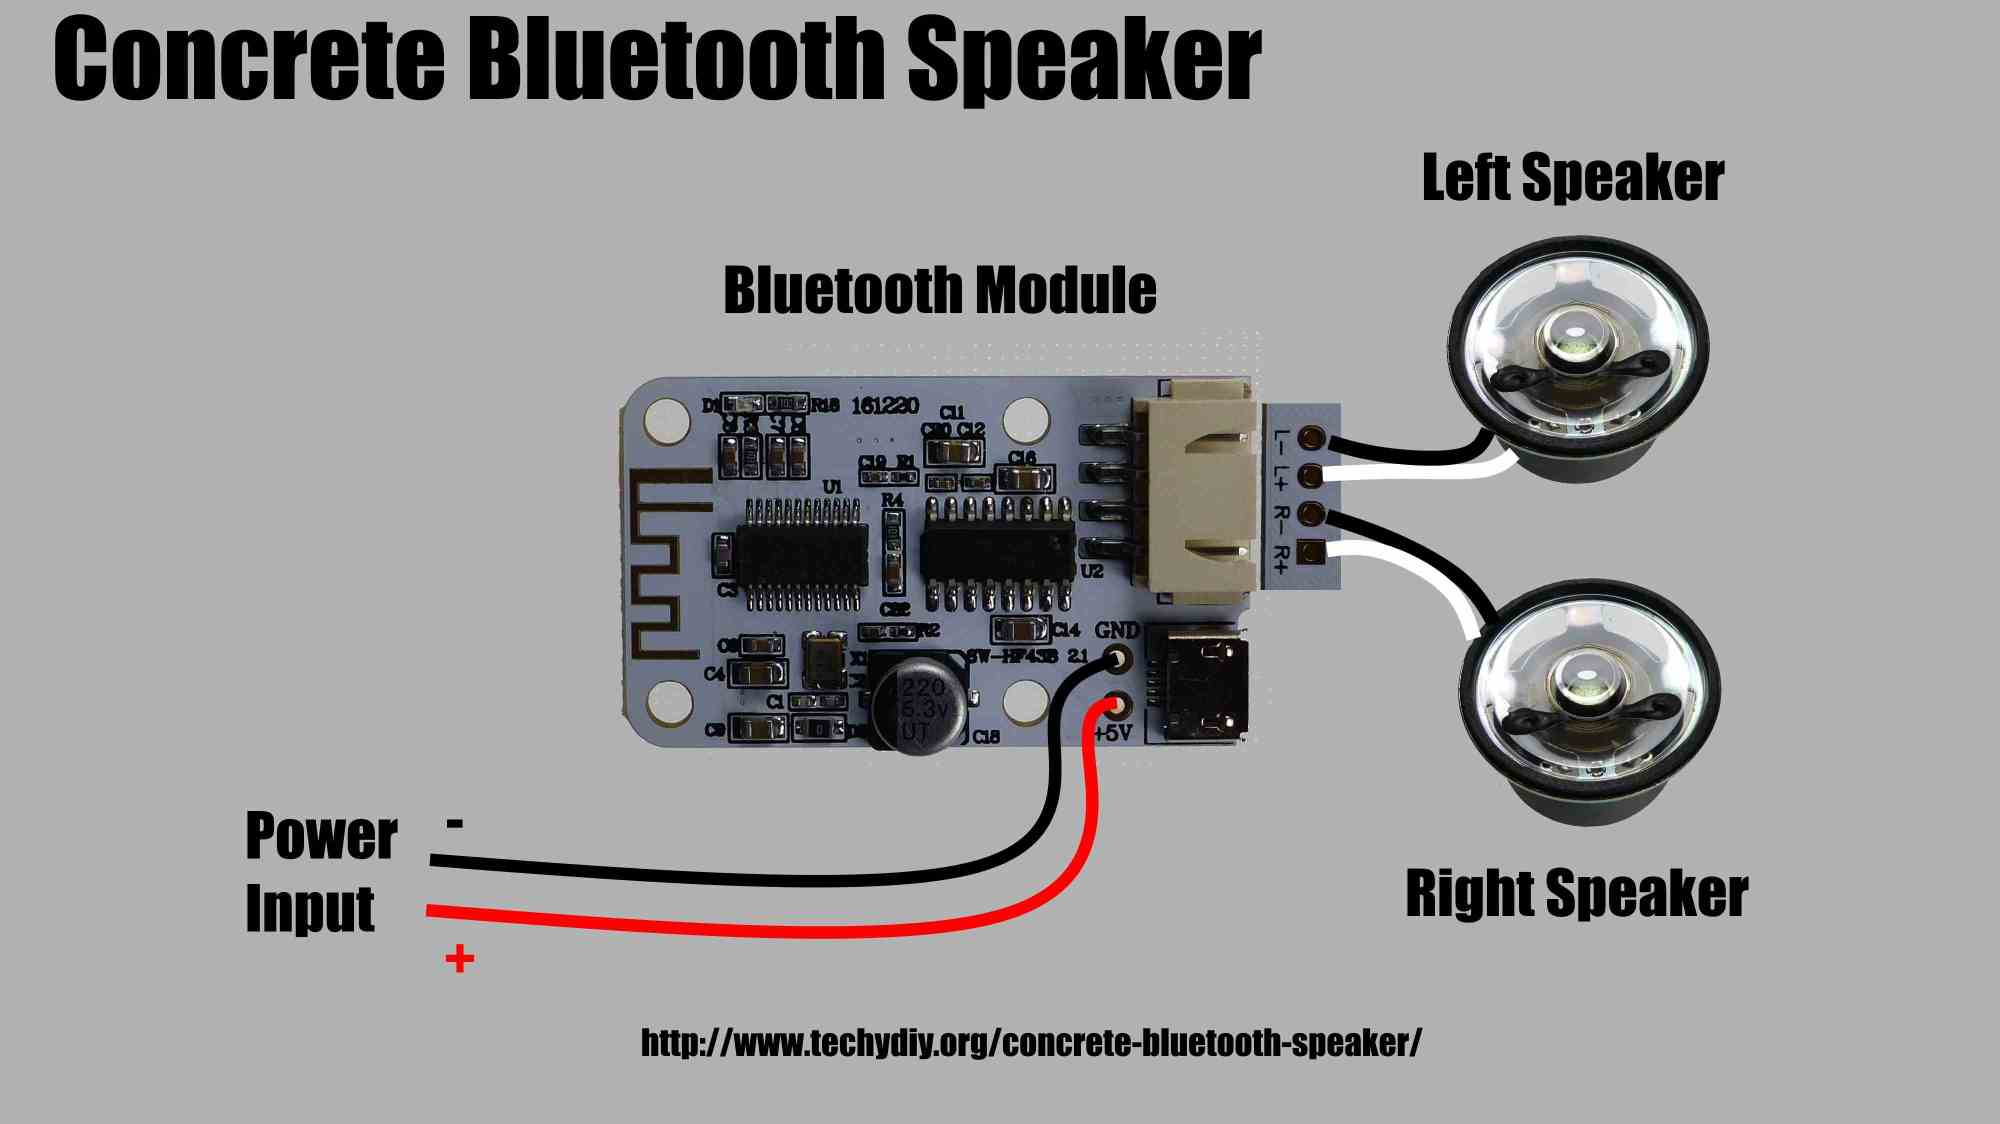 hight resolution of concrete bluetooth speaker wiring diagram